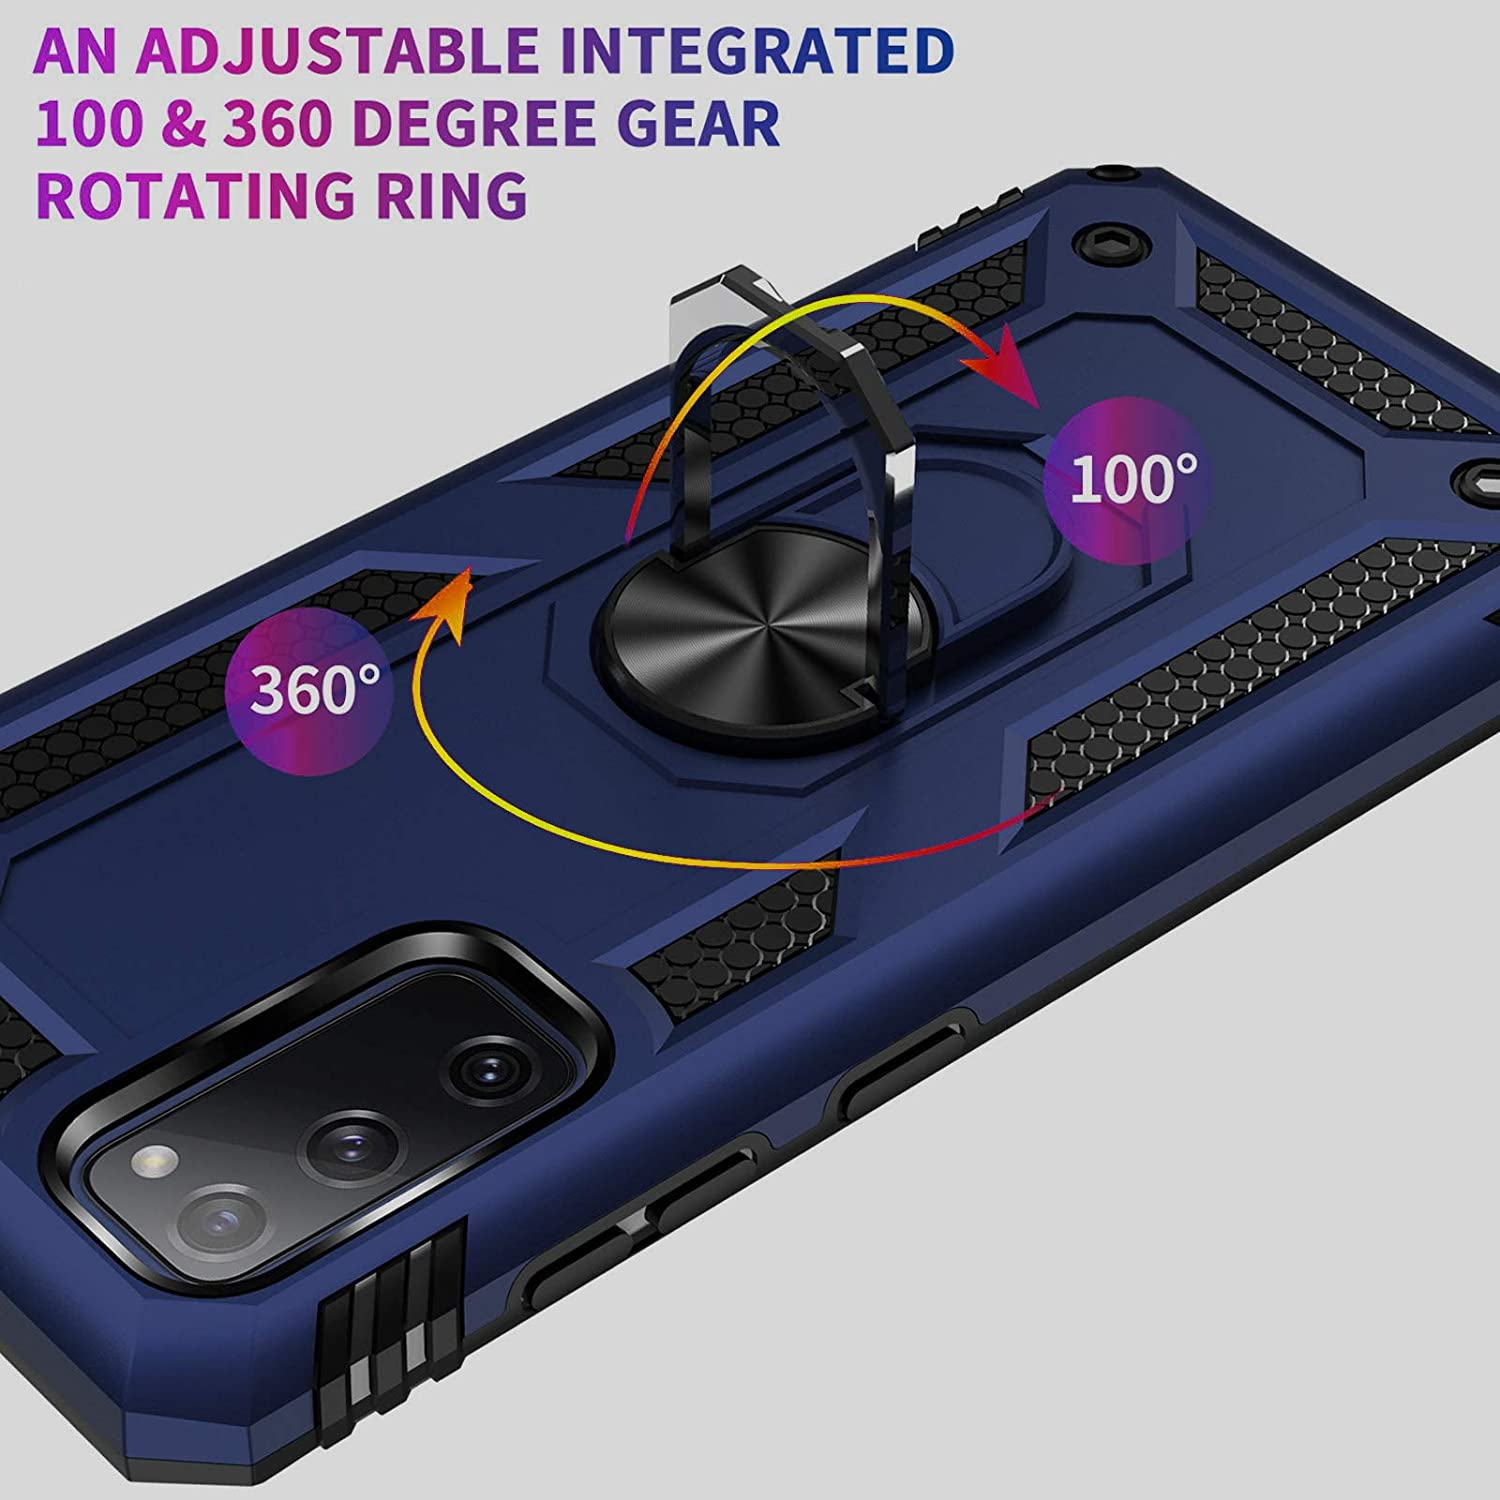 Armor Case Compatible with Samsung Galaxy S20 Fe 5G Case with 360 Degree Ring Holder Stand Mobile Phone Case PC Silicone Protective Case Shockproof Bumper for Samsung S20 Fe 5G Rugged Case